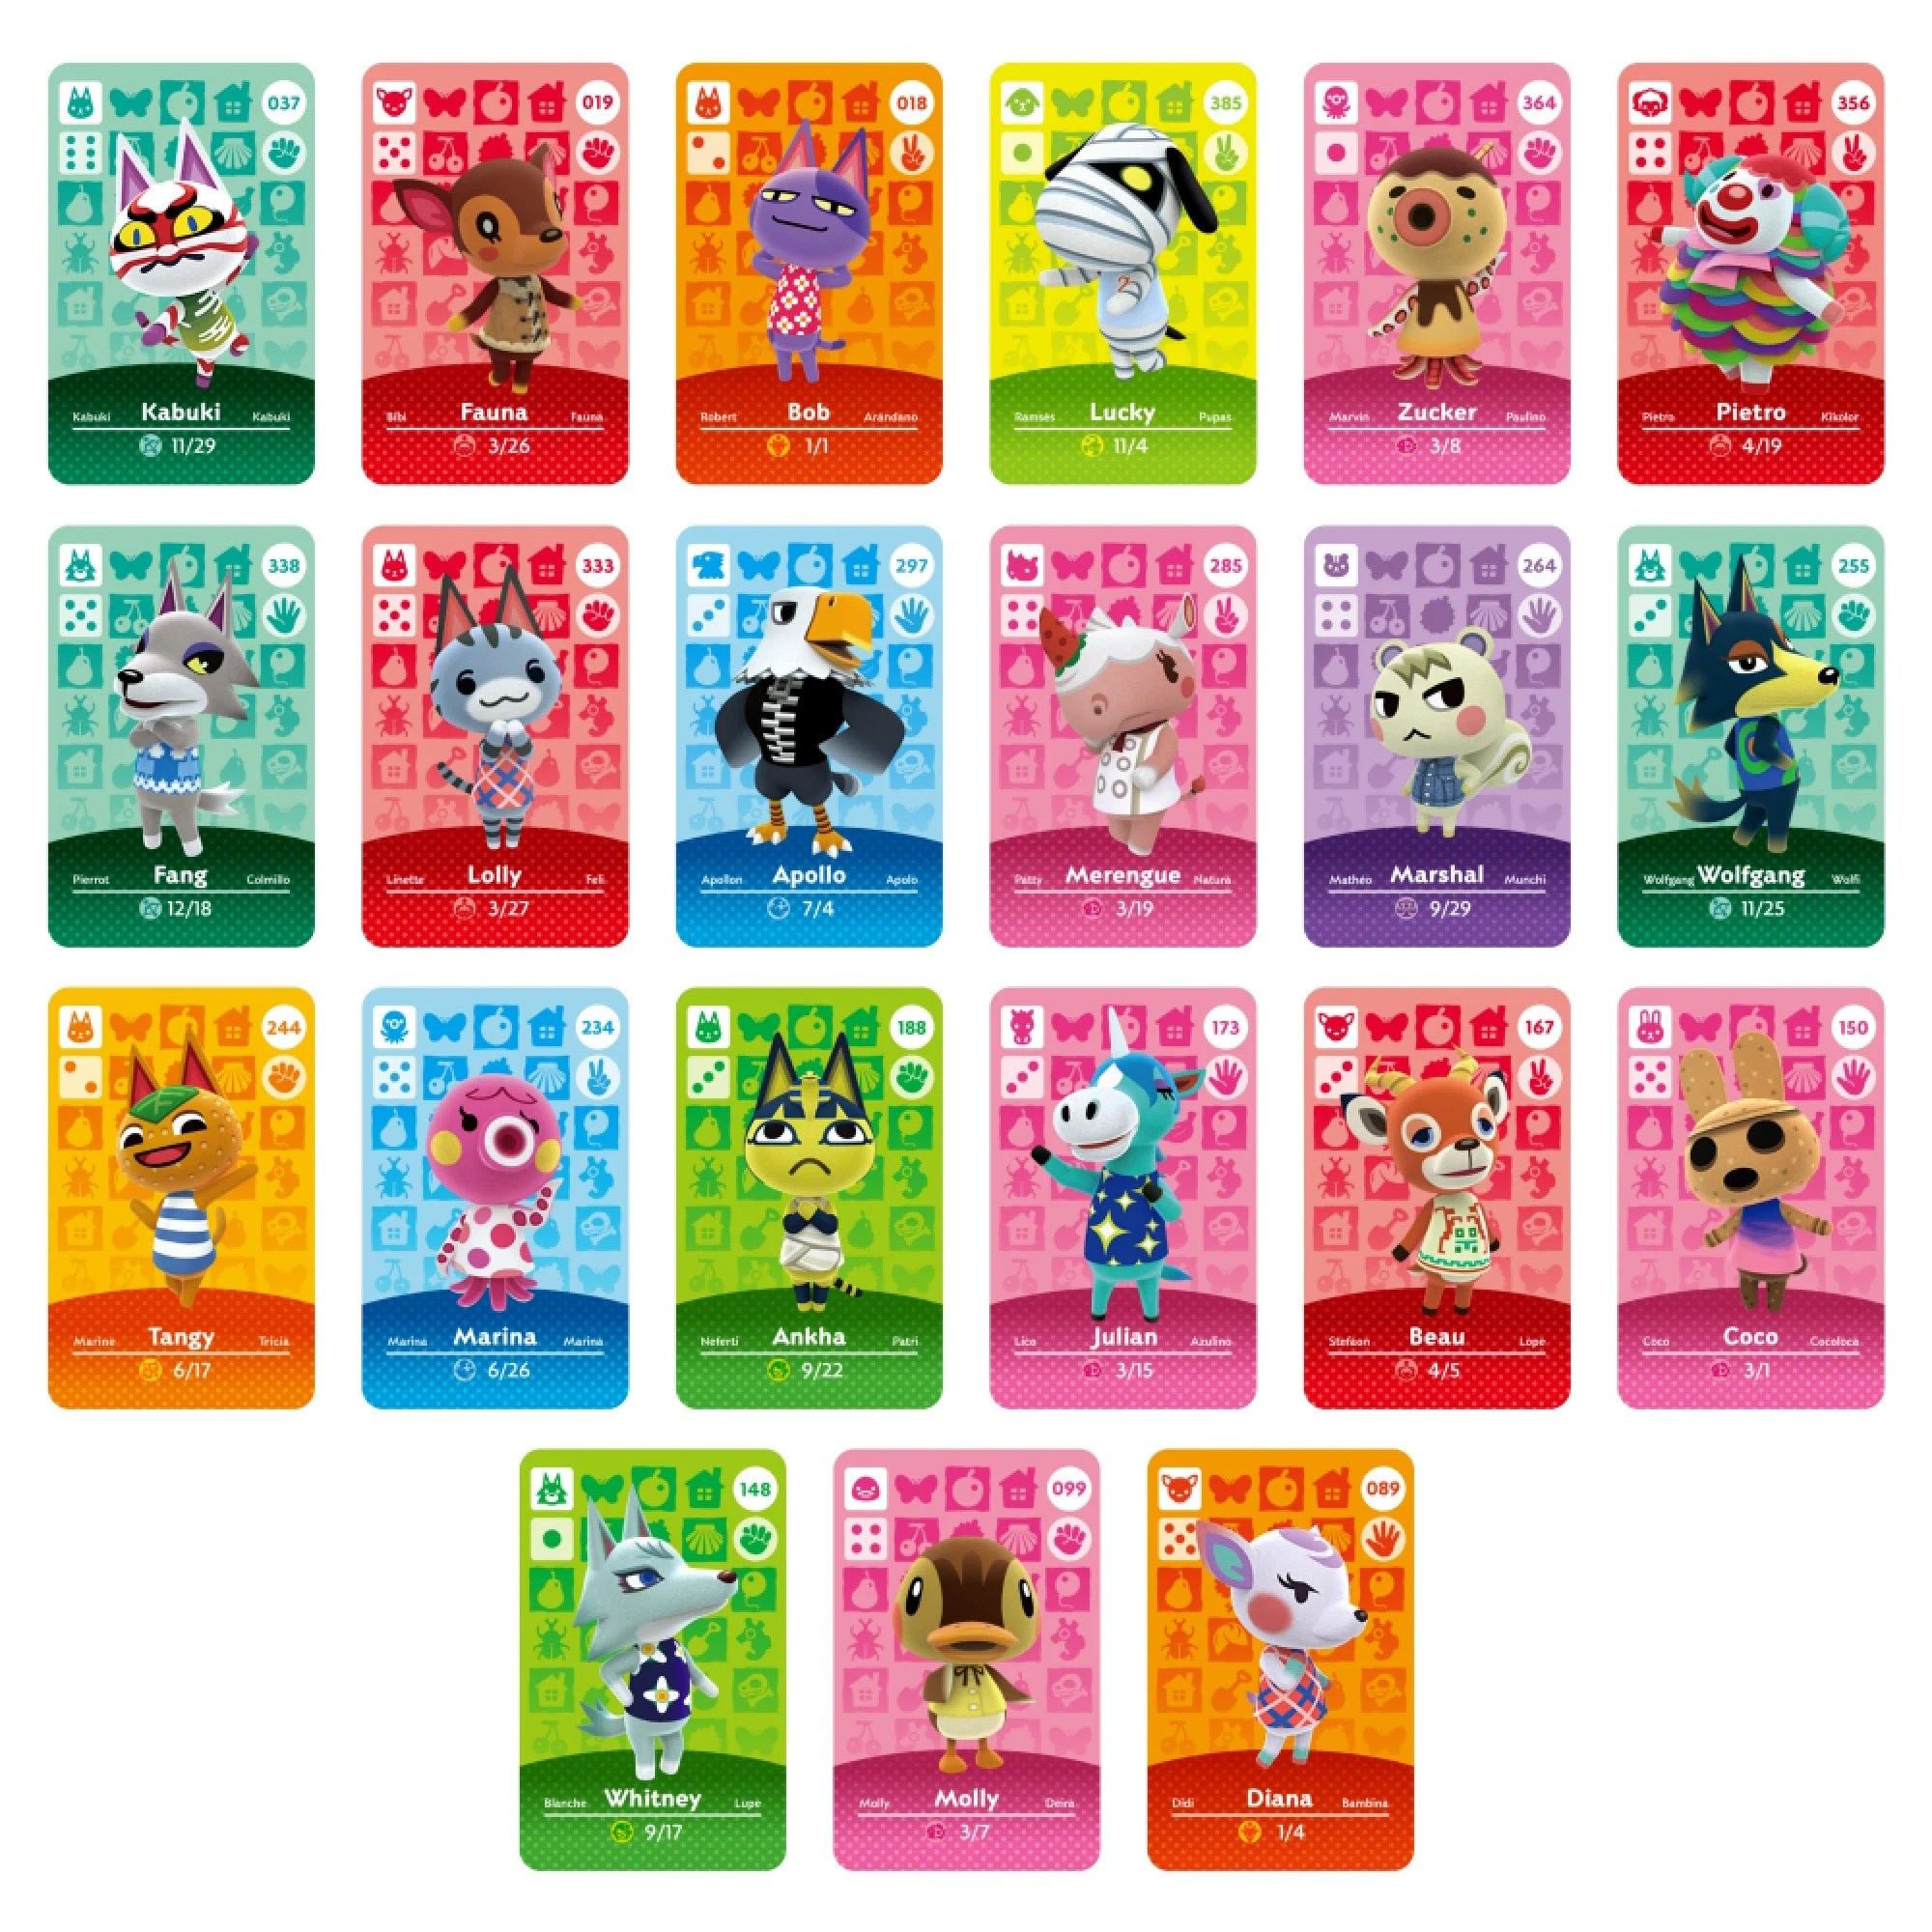 Tap the card to invite the depicted villager to your town! Animal Crossing: Custom Rare Villagers Amiibo Card   Etsy